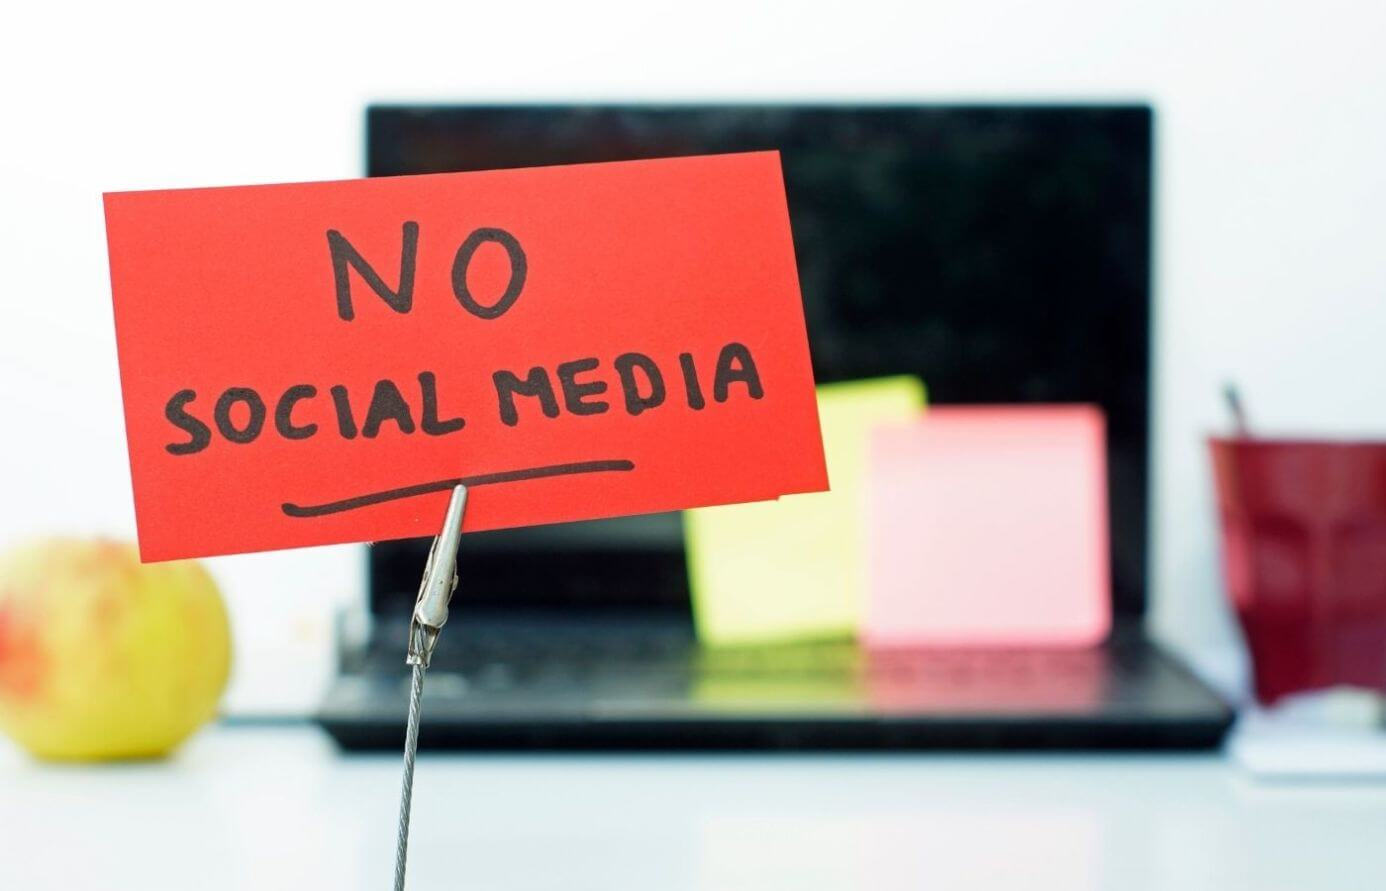 ways to market your business without social media